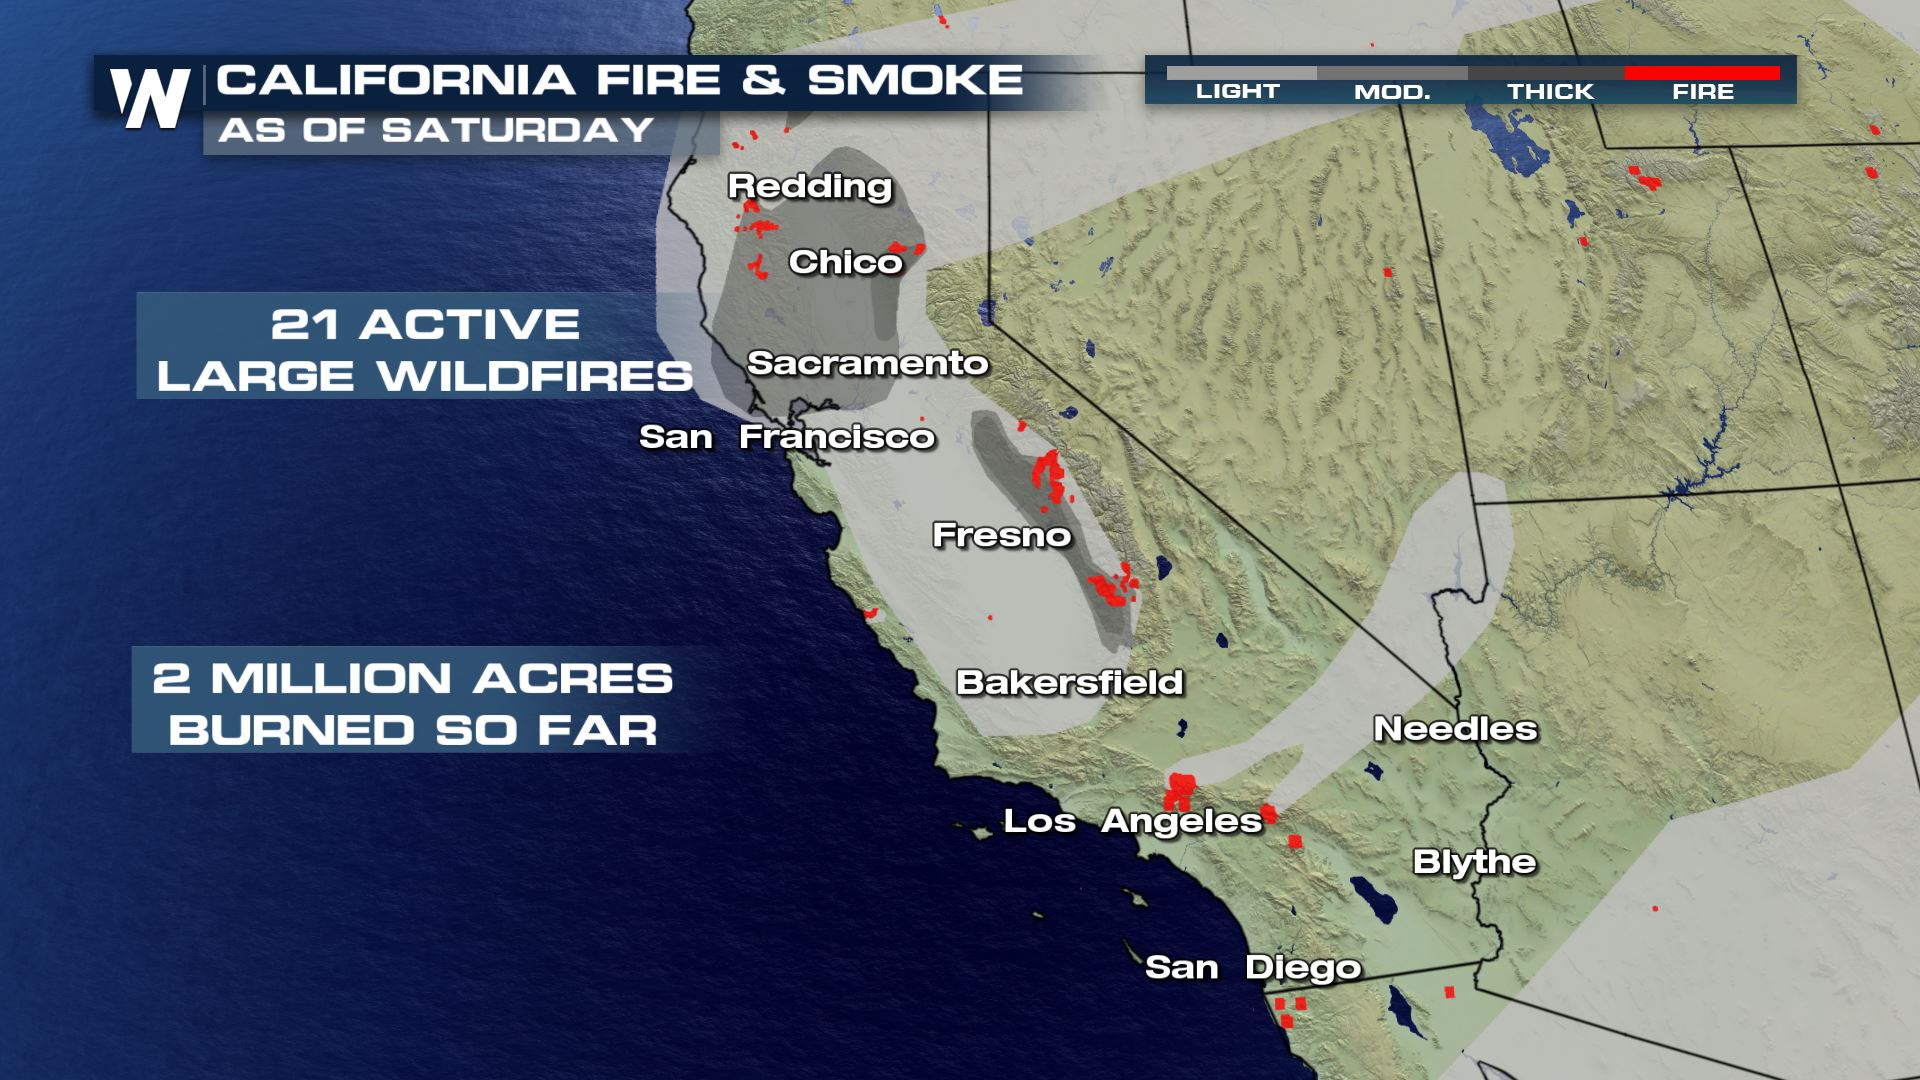 Fire Update Across The West